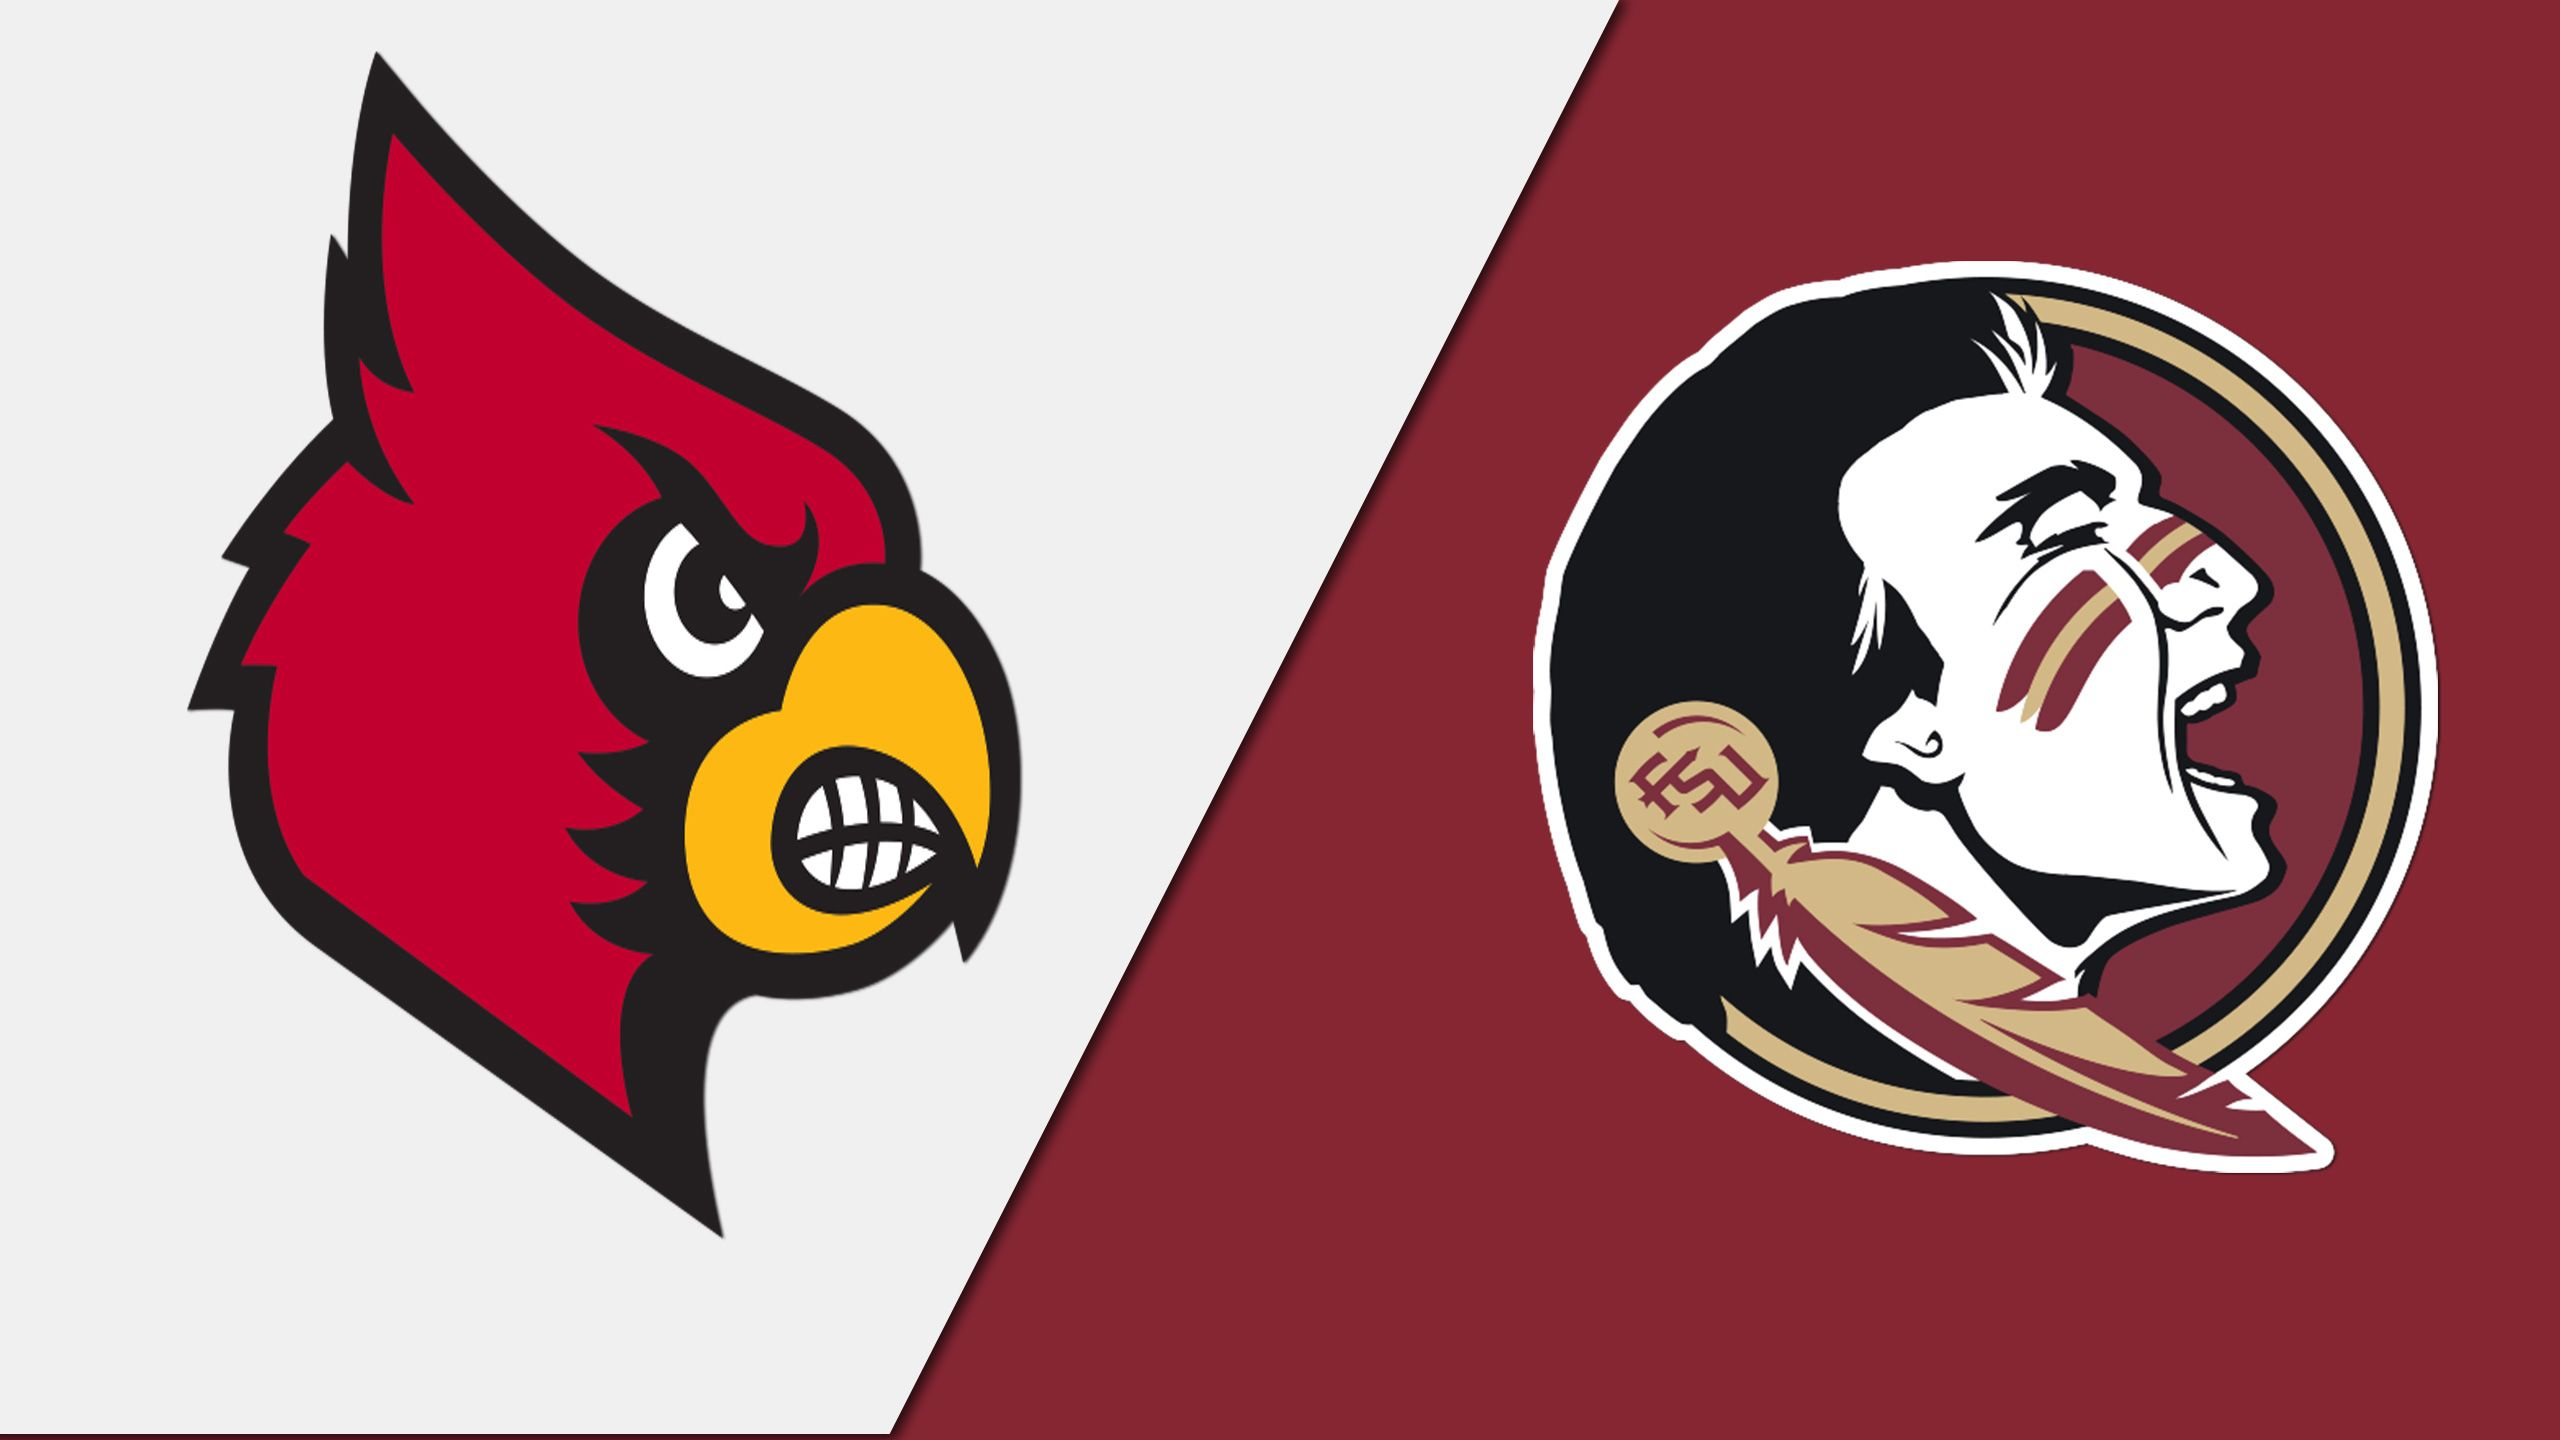 #18 Louisville vs. #5 Florida State (Baseball)